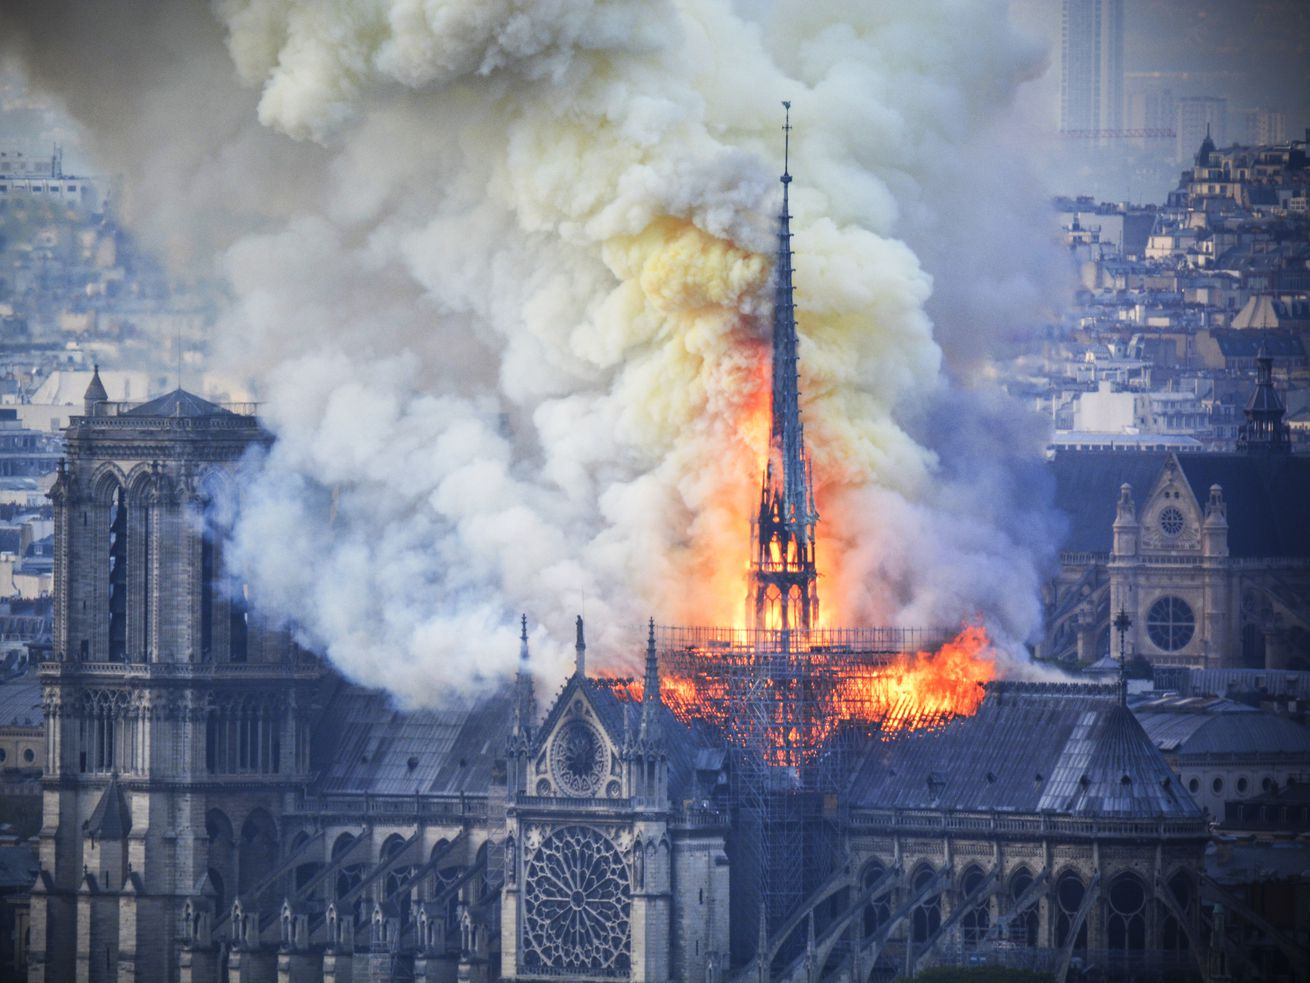 Smoke and flames rise during a fire at the landmark Notre Dame Cathedral in central Paris, France, on April 15, 2019.